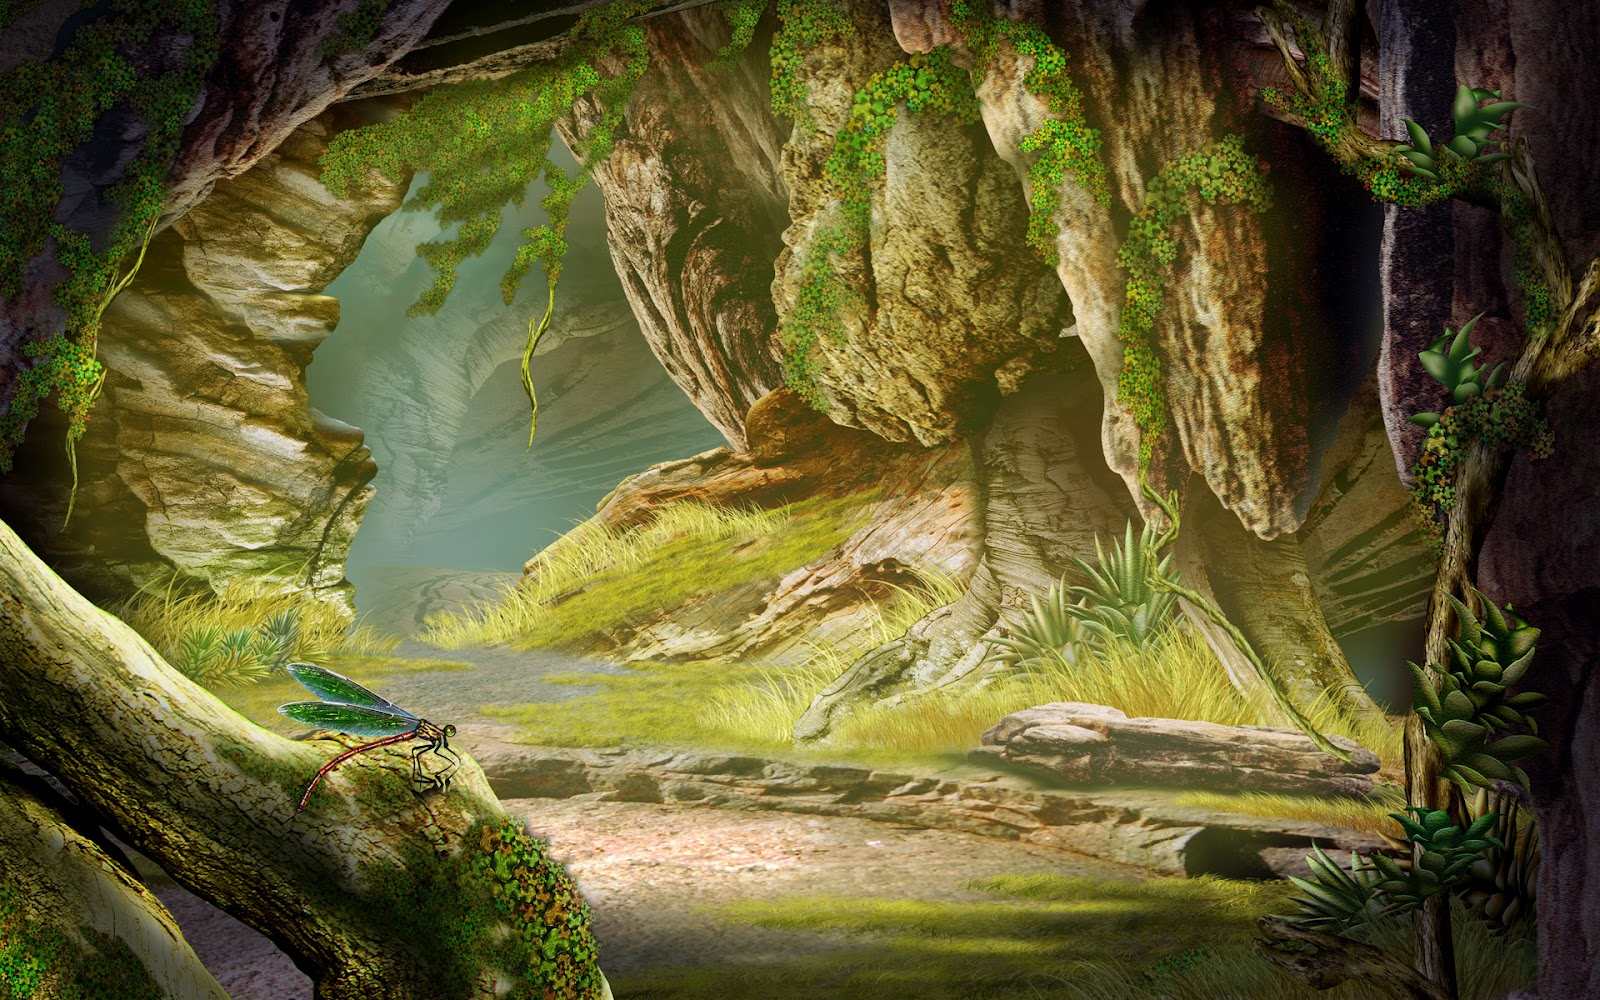 Stunning Hd Fantasy Wallpapers: HD Beautiful Fantasy Wallpapers